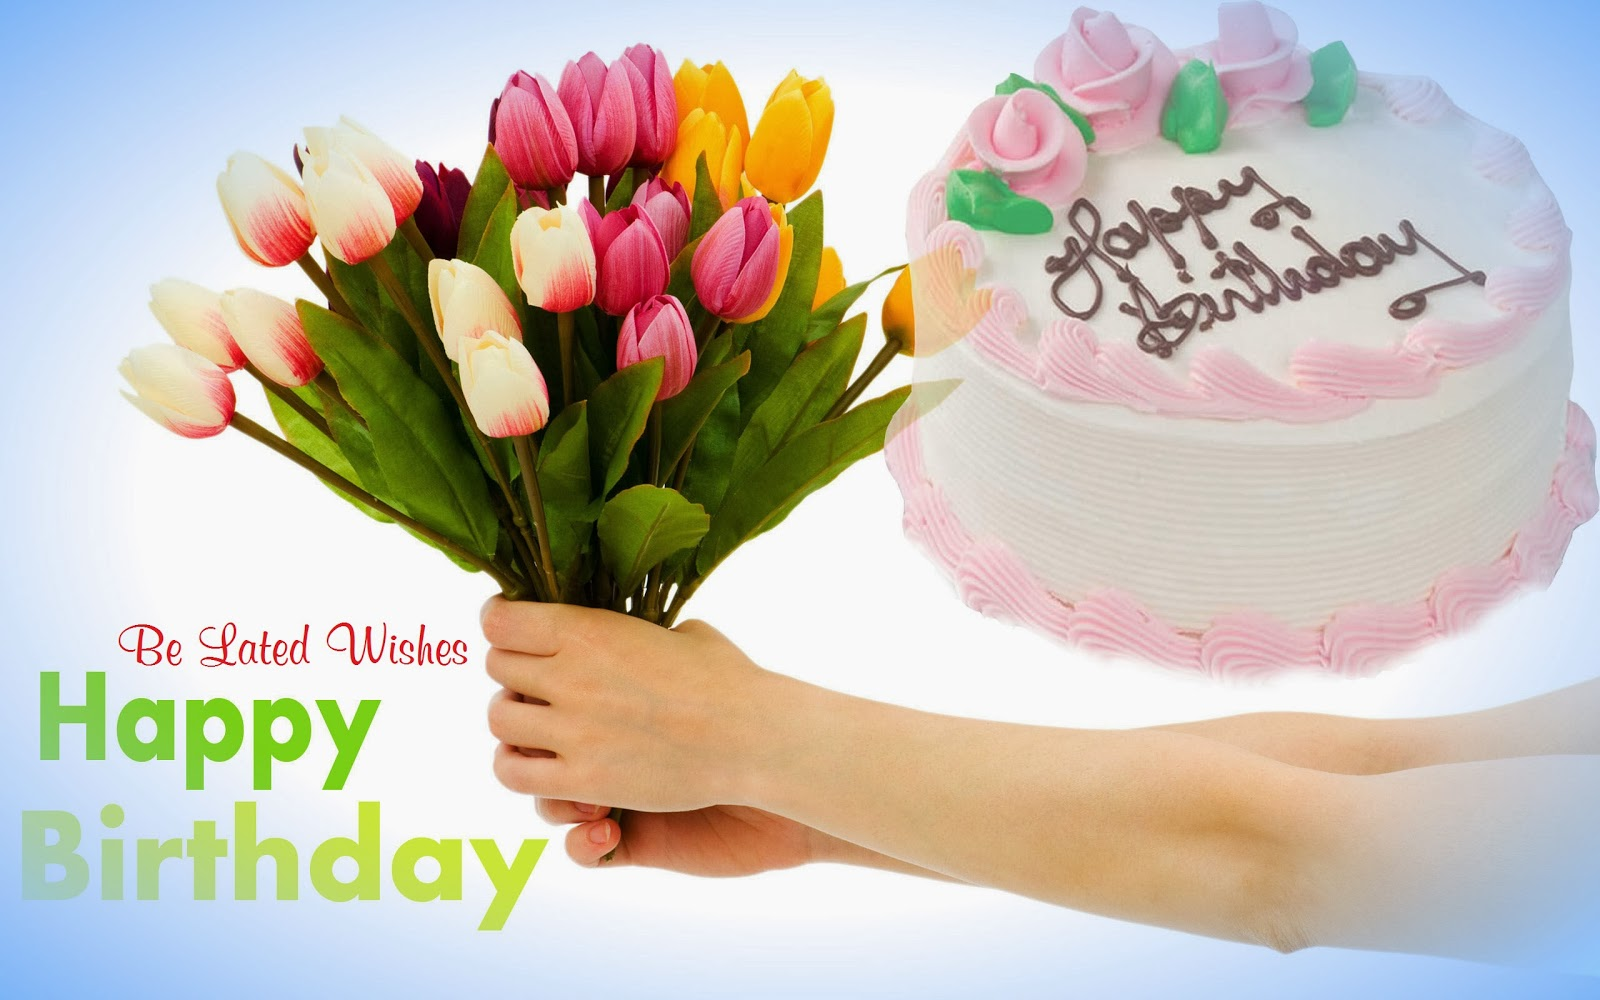 New Birthday Wishes Cards Birthday Gifts Wallpapers